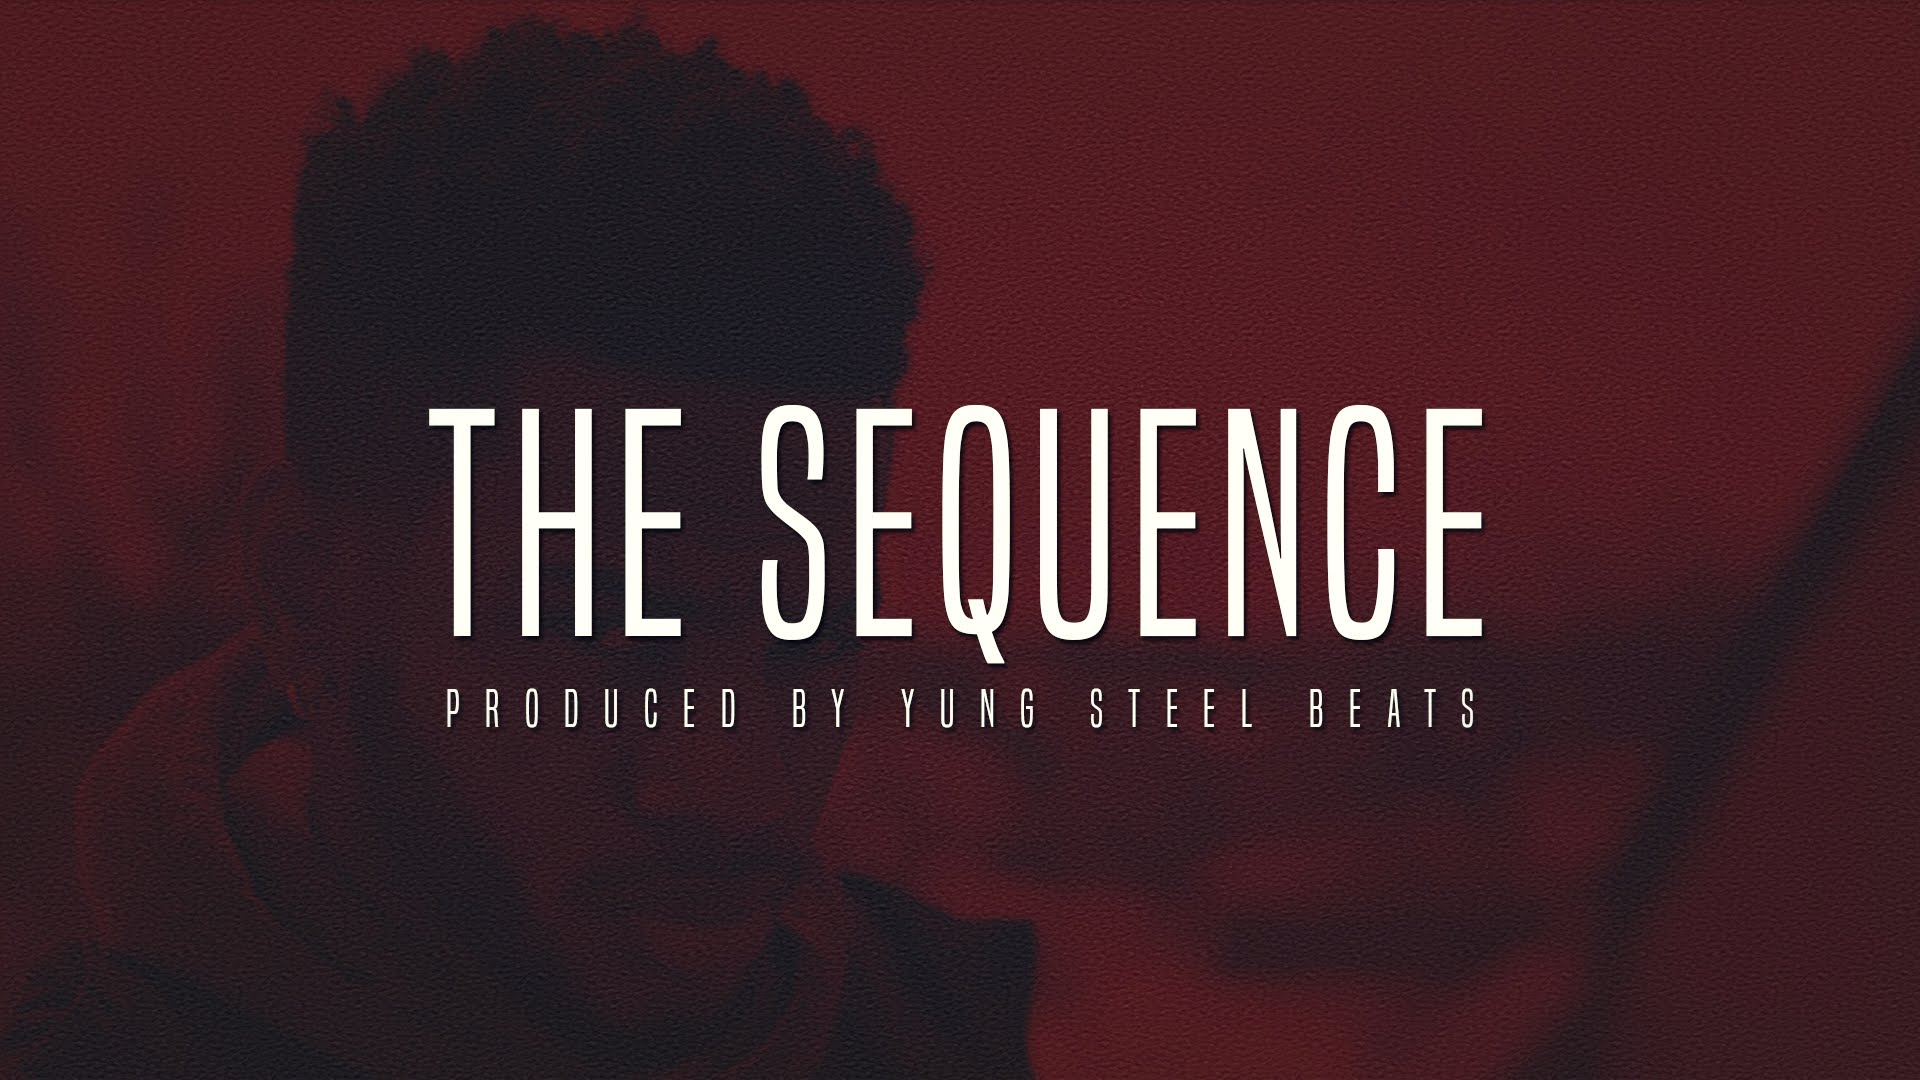 [the Sequence] Backgrounds, Compatible - PC, Mobile, Gadgets| 1920x1080 px